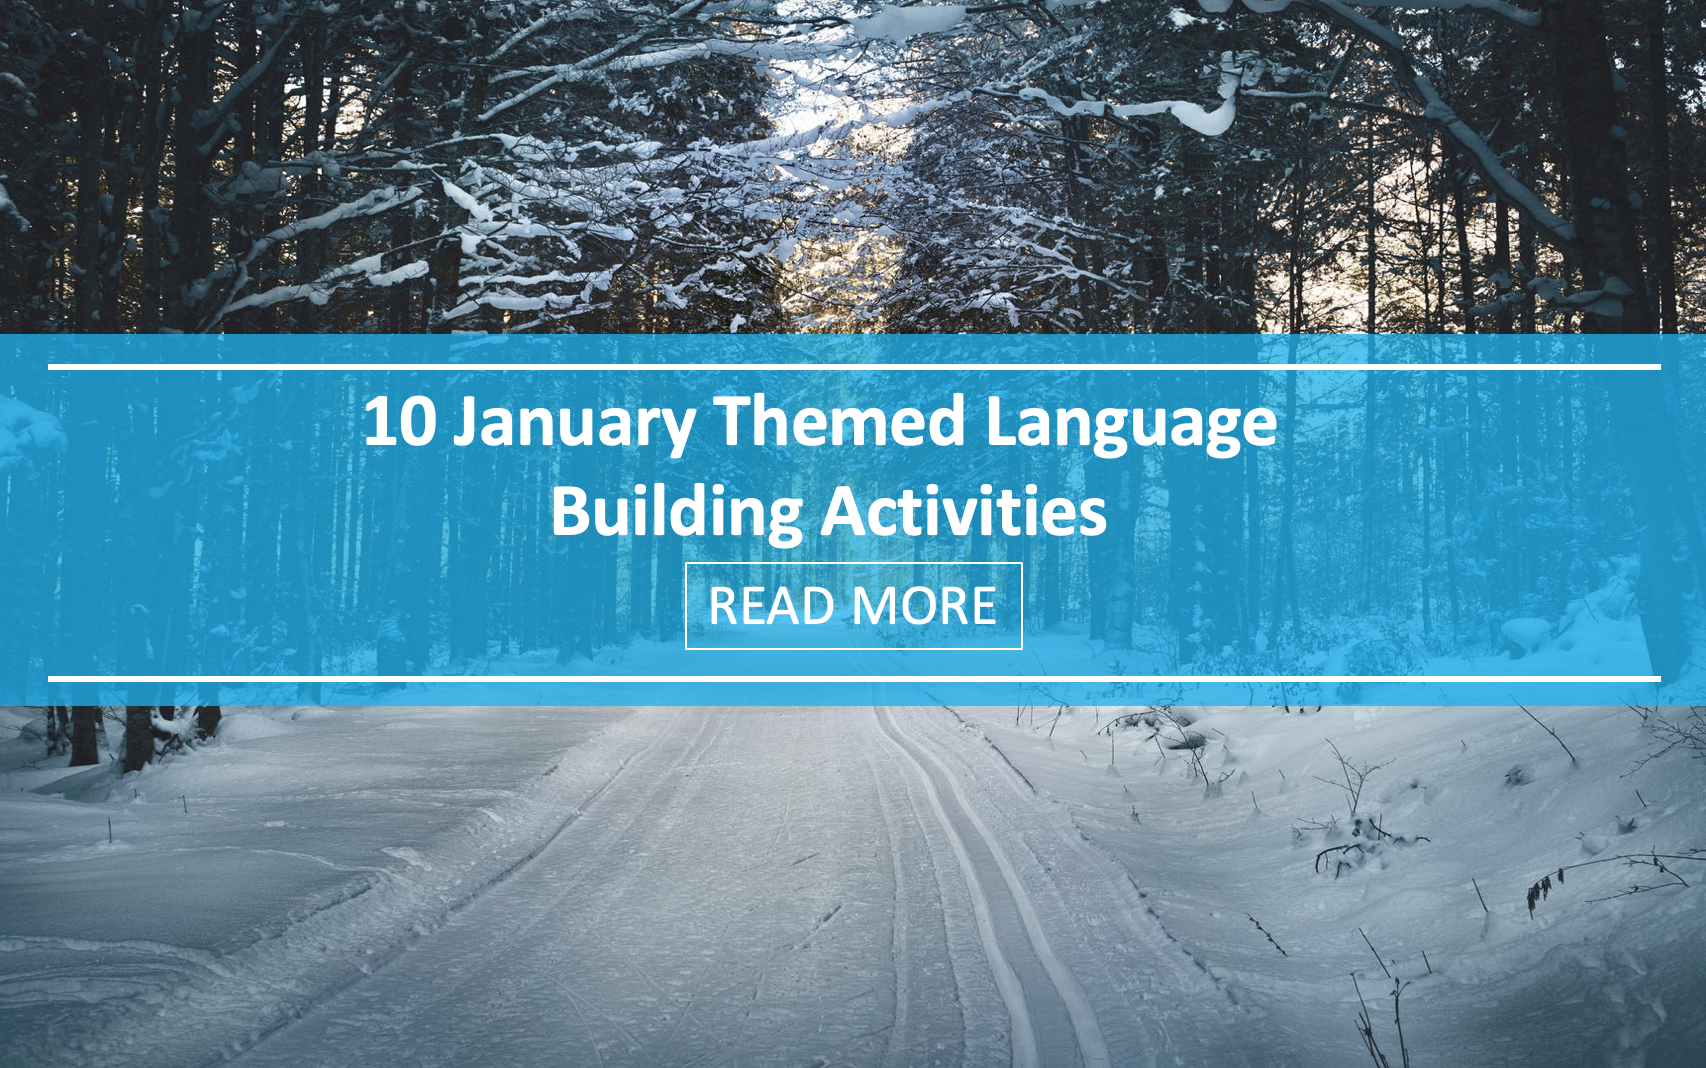 10 January Themed Language Building Activities